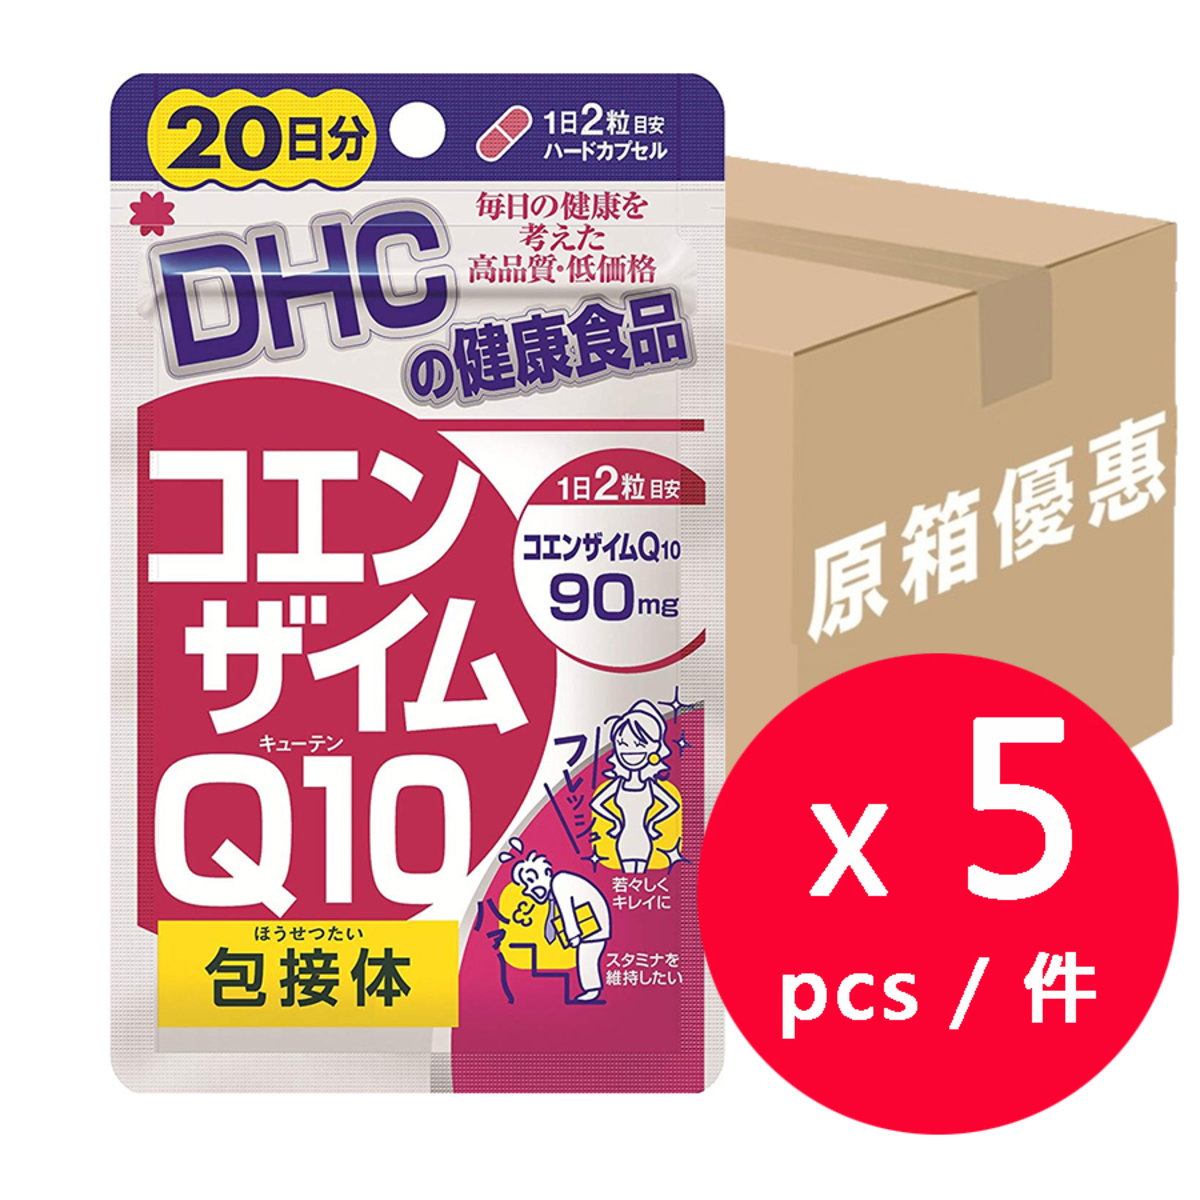 DHC Reduced Coenzyme Q10 Supplement (20 Day) x 5 packs (Parallel Import)